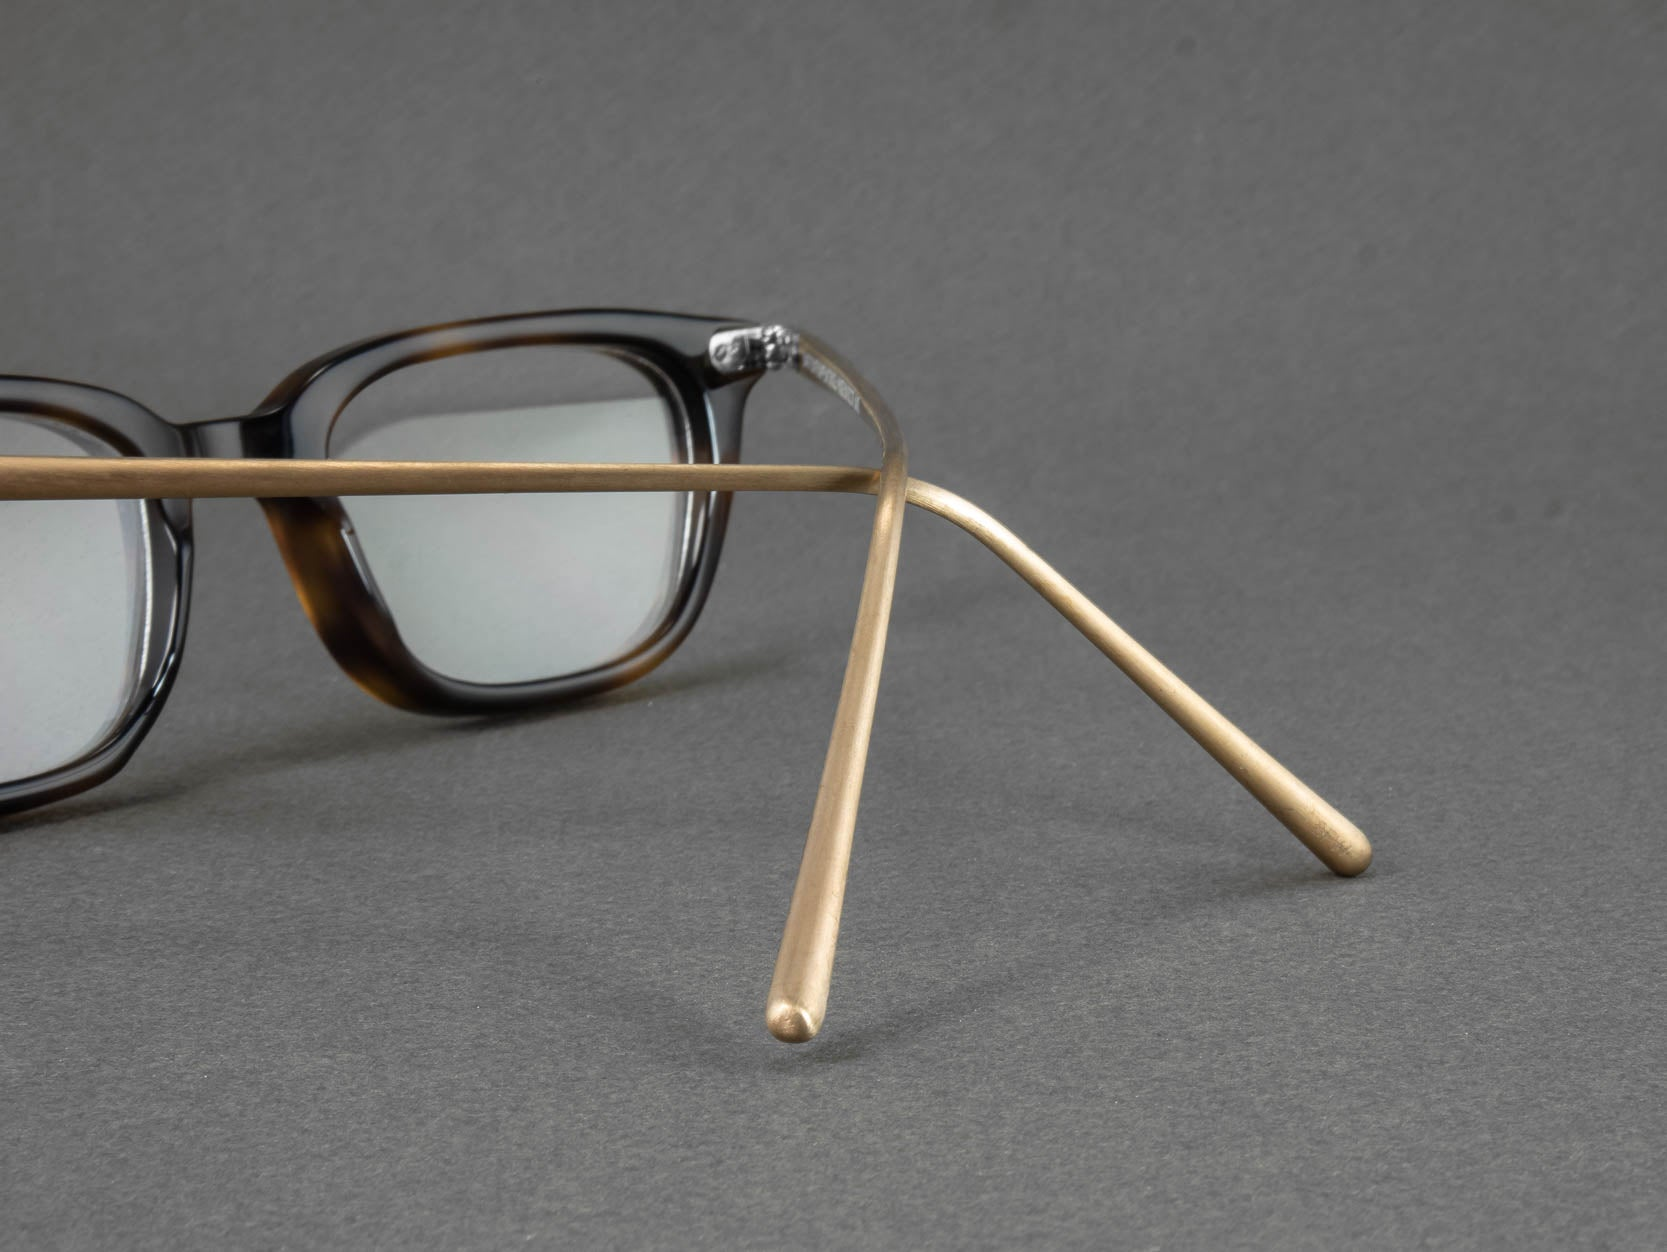 rectangular tortoise shell glasses frame temple close up